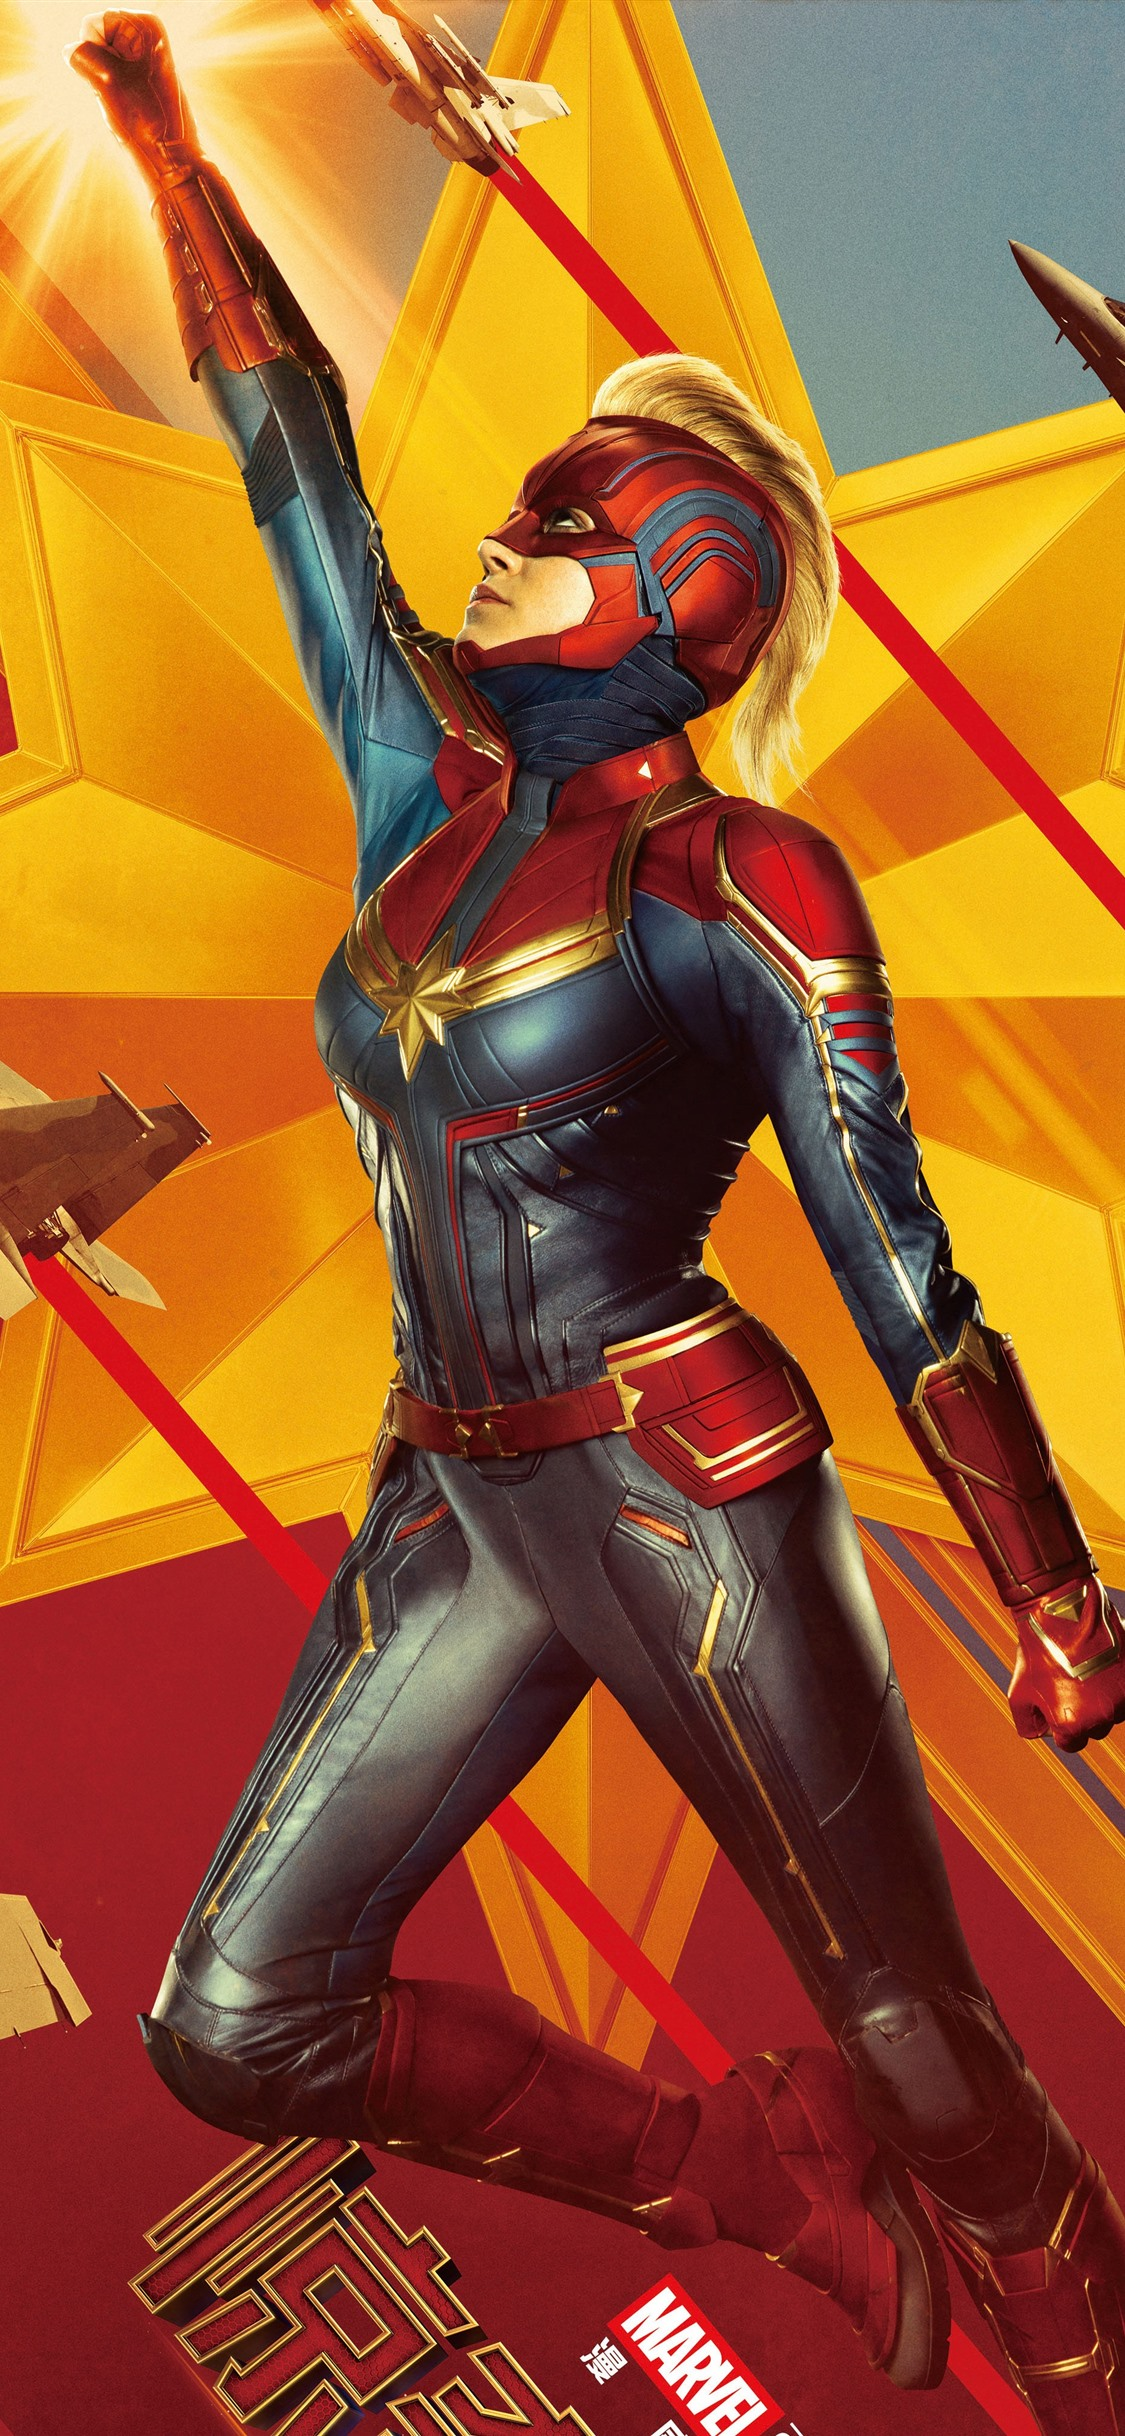 Captain Marvel 2019 Movie 1242x2688 Iphone 11 Pro Xs Max Wallpaper Background Picture Image Nowadays, we received part of customer feedback. captain marvel 2019 movie 1242x2688